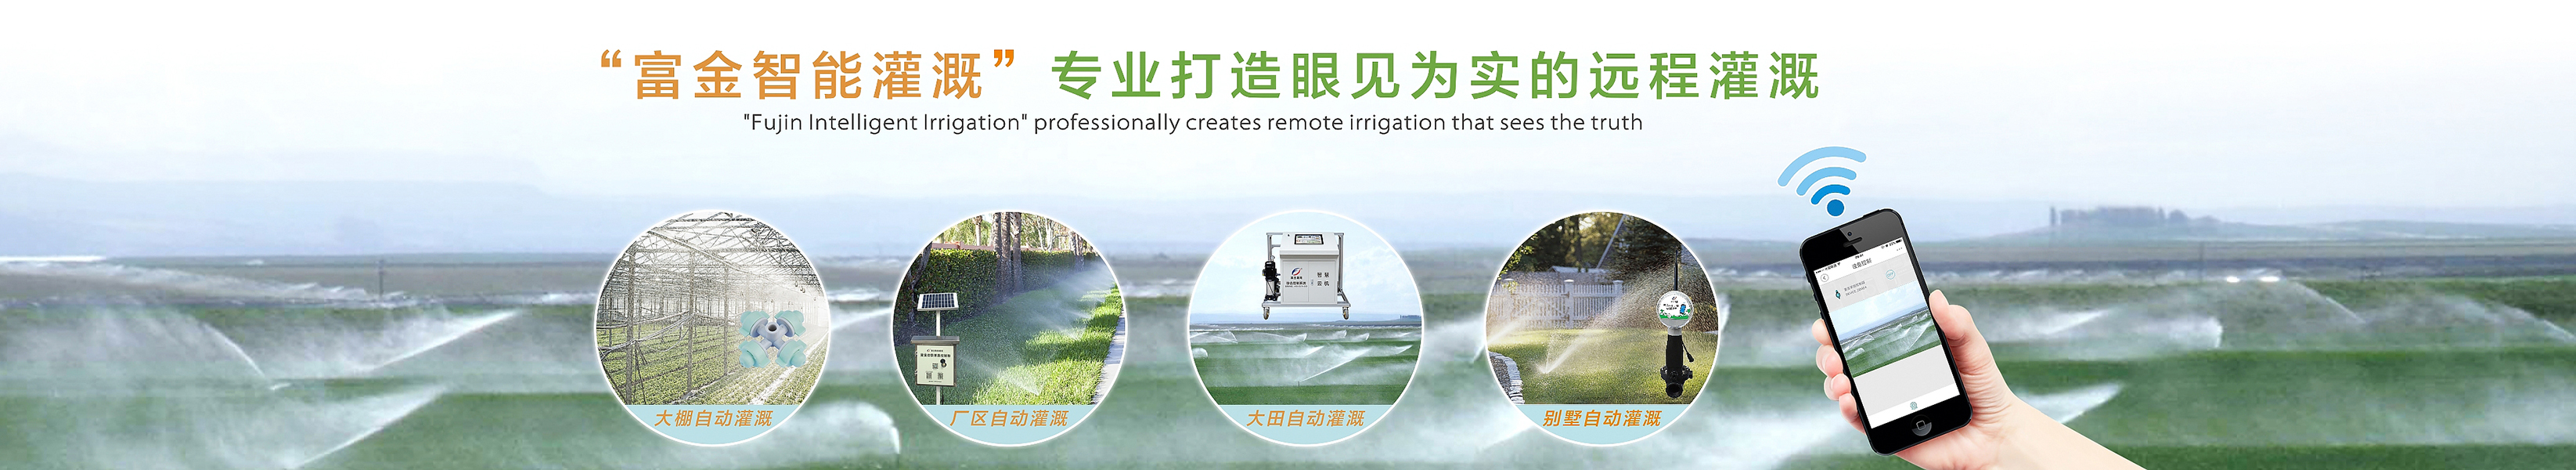 http://www.fujinirrigation.com/data/images/slide/20191209104734_190.jpg